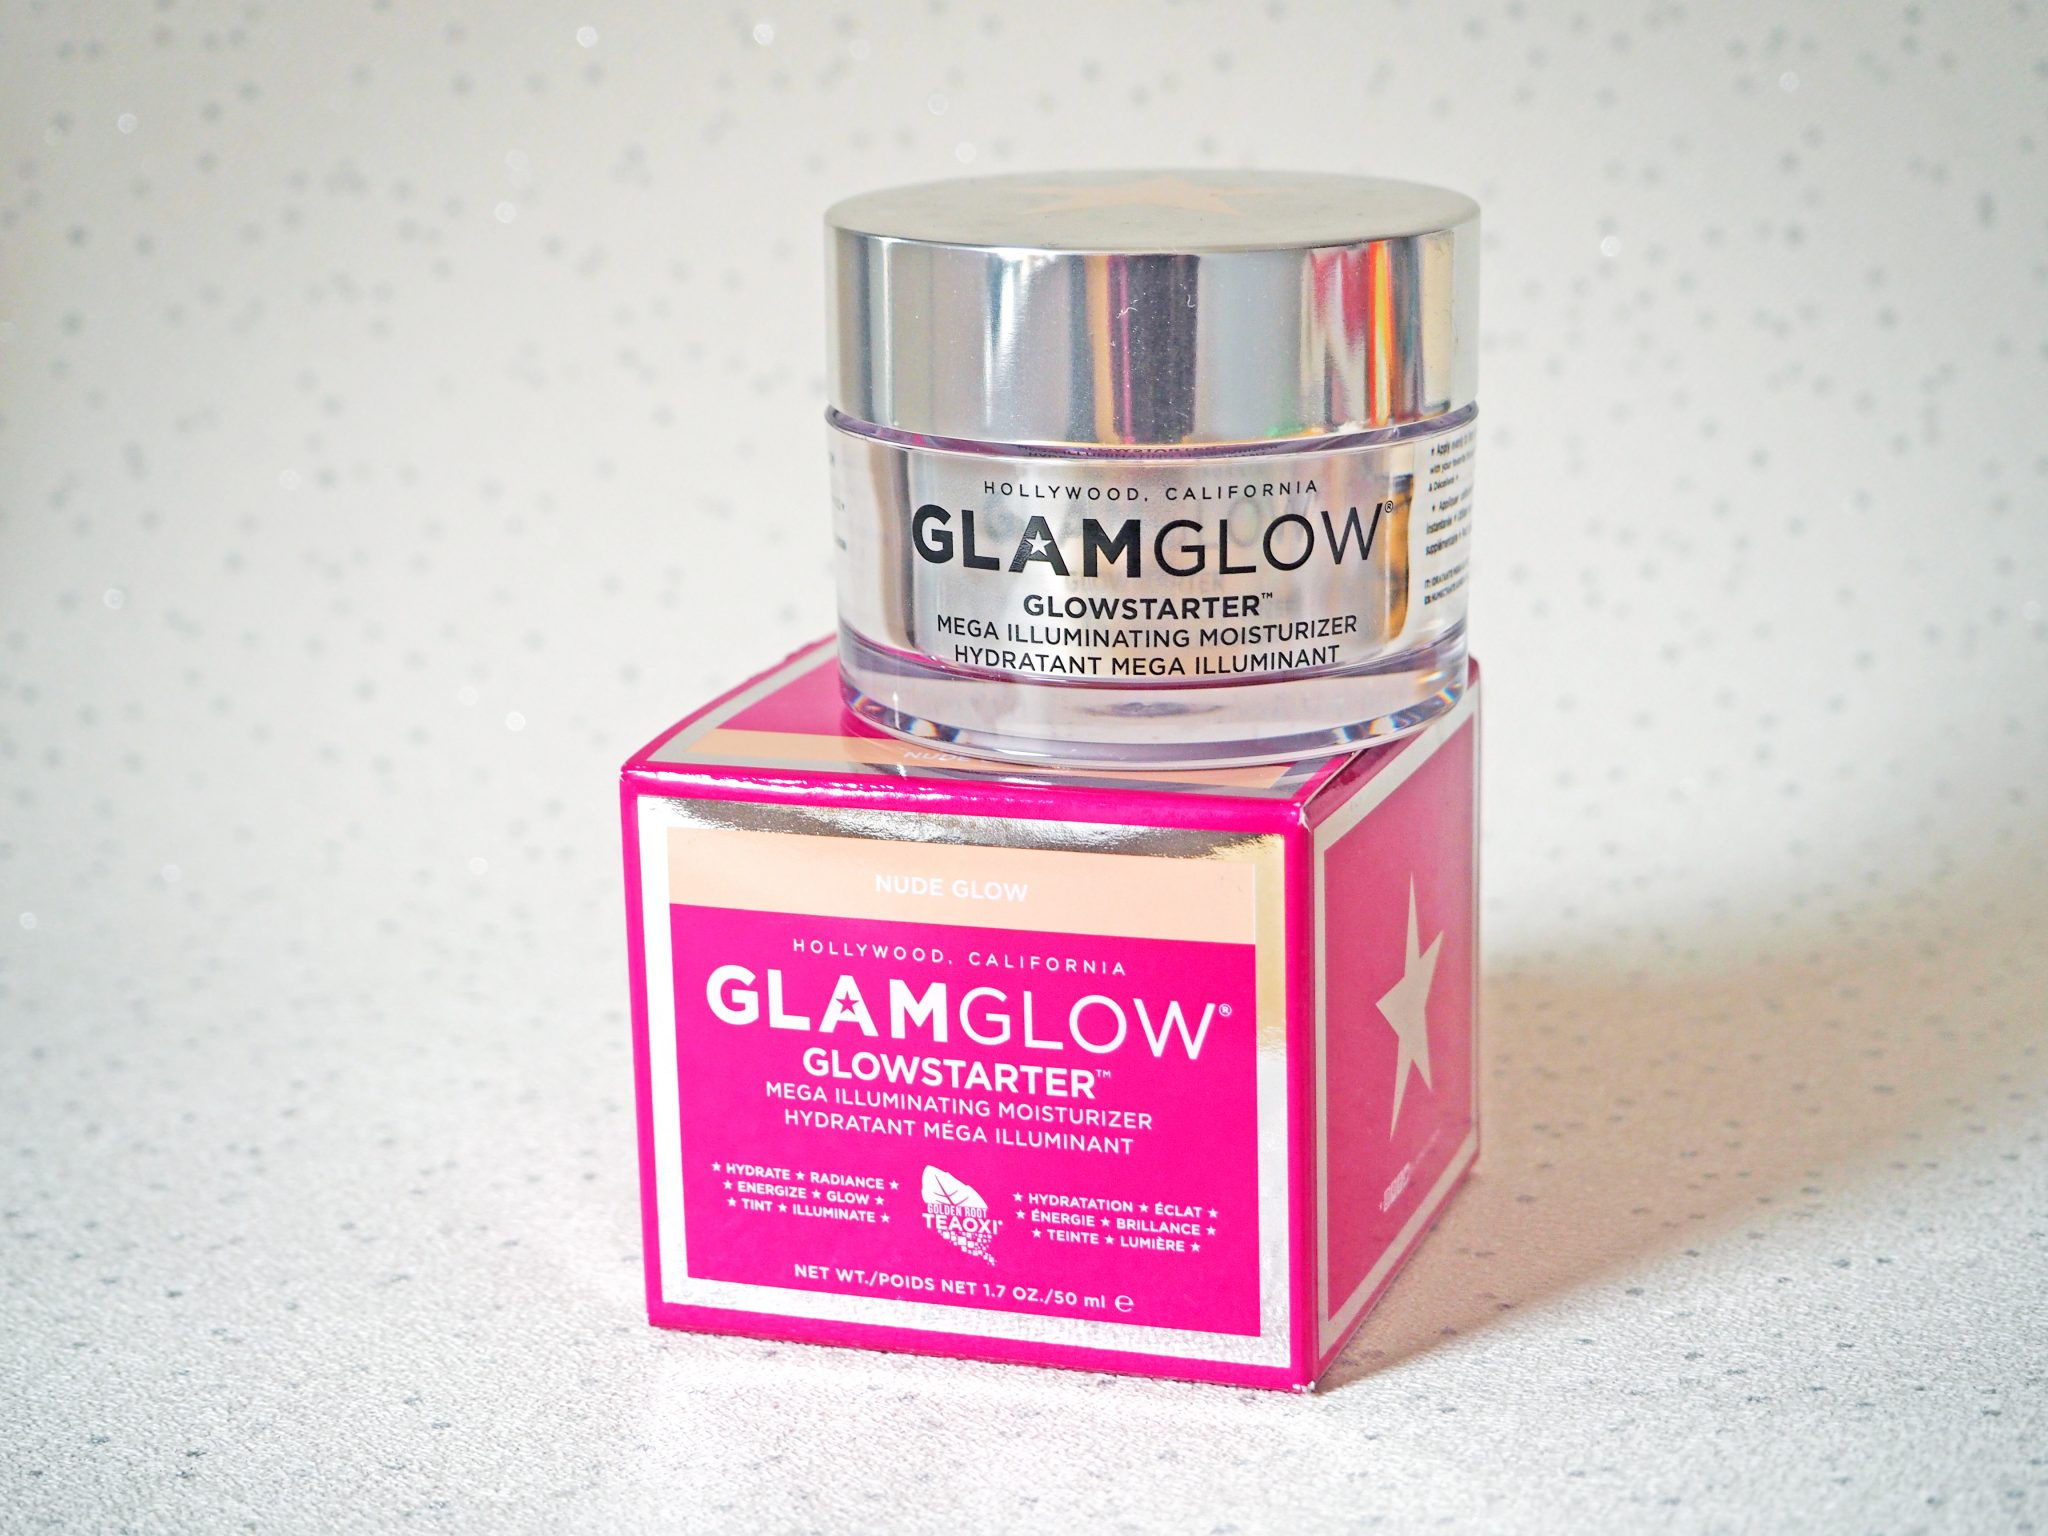 Laura Kate Lucas - Manchester Fashion, Food and Beauty Blogger | Glam Glow Glowstarter Product Review